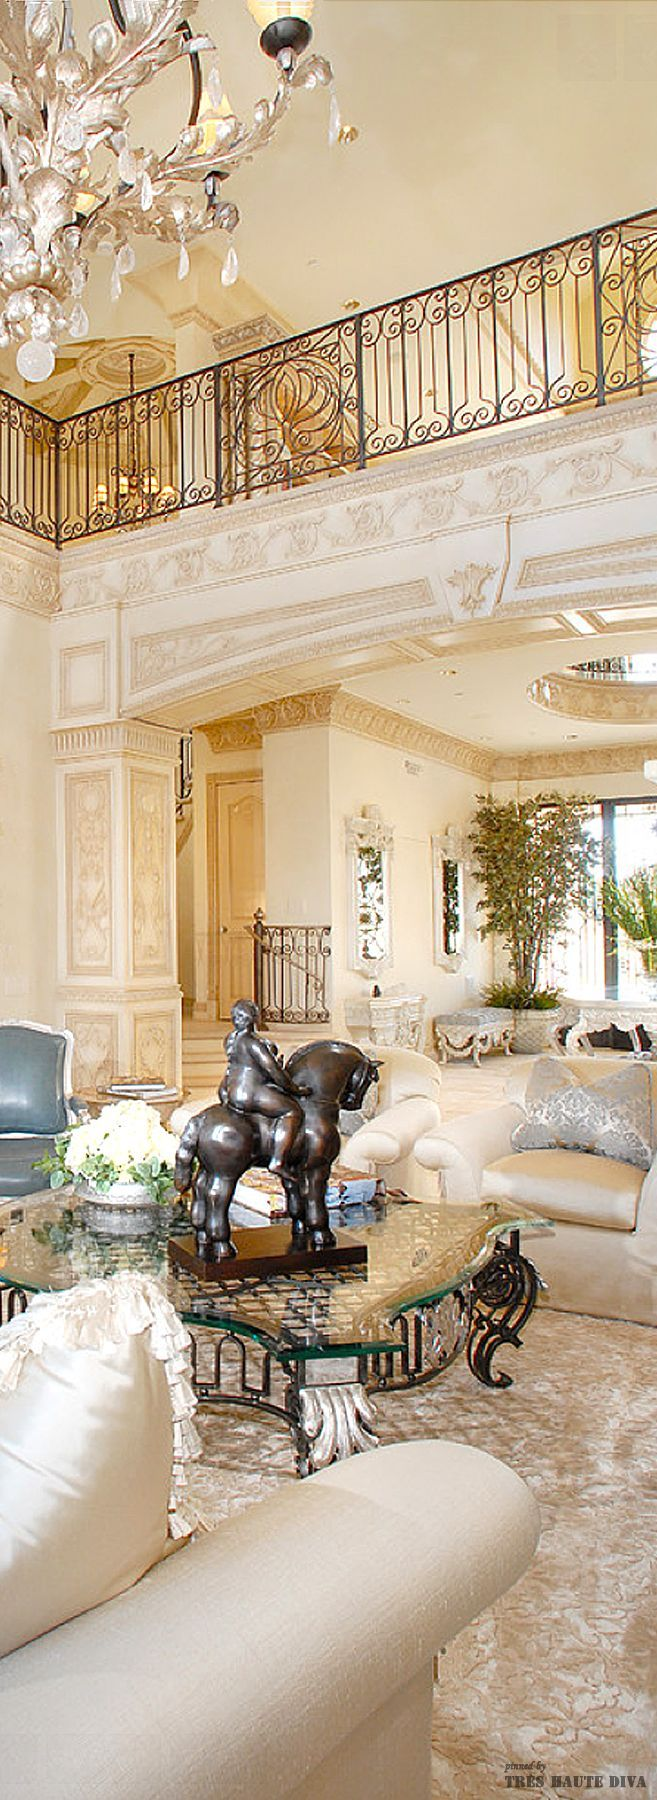 14 Amazing Living Room Designs Indian Style Interior And Decorating Ideas: Luxury Homes, Home, House Interior